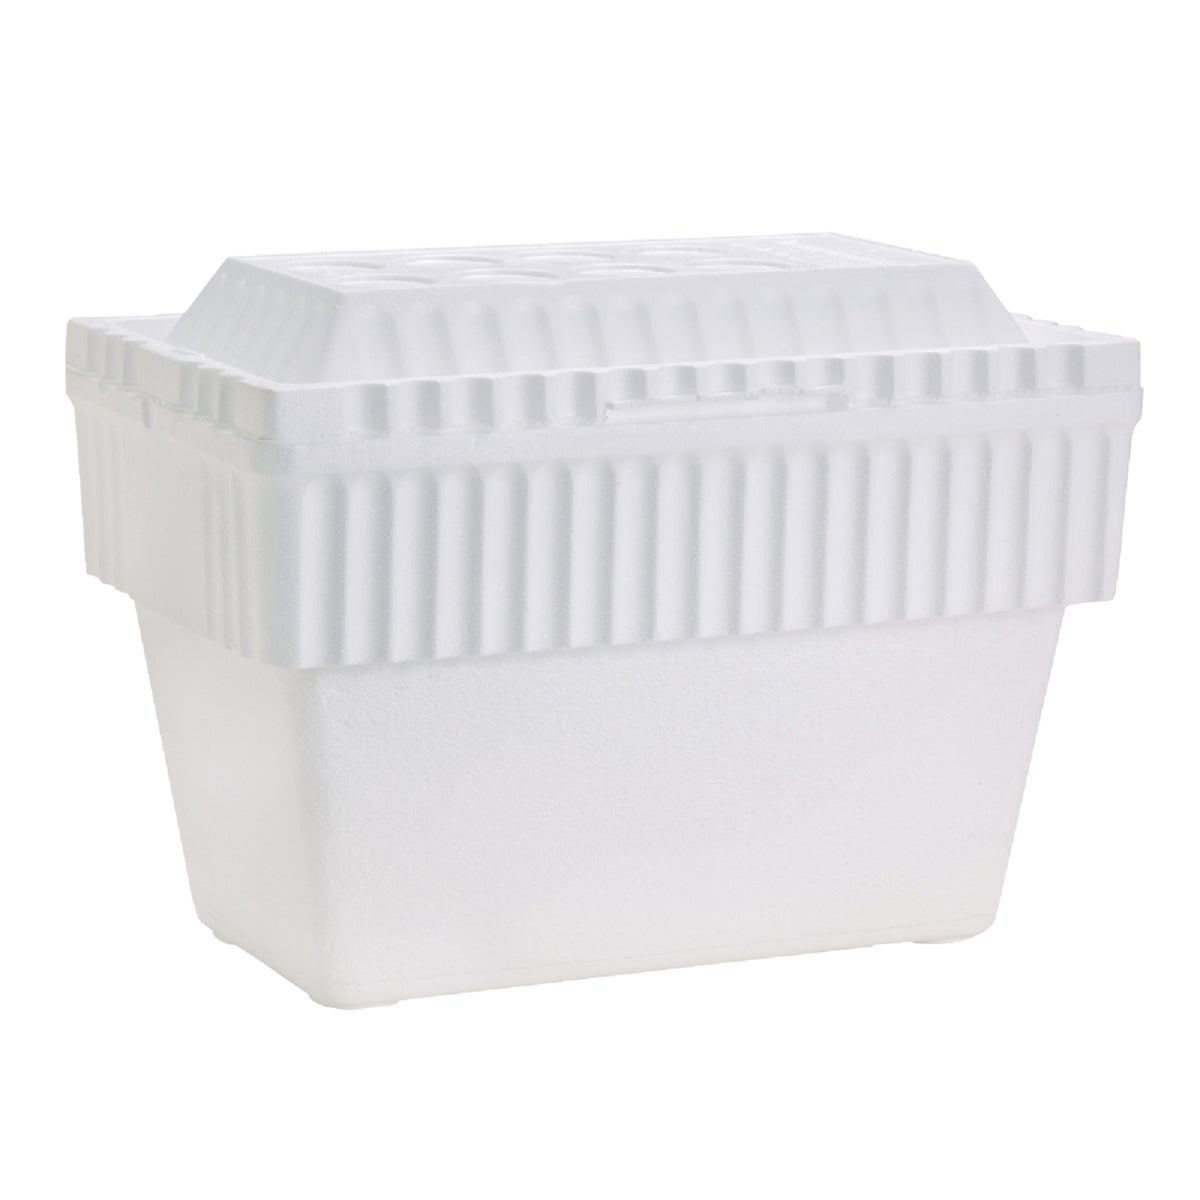 Lifoam Div. Life Like 40QT FOAM COOLER 3419